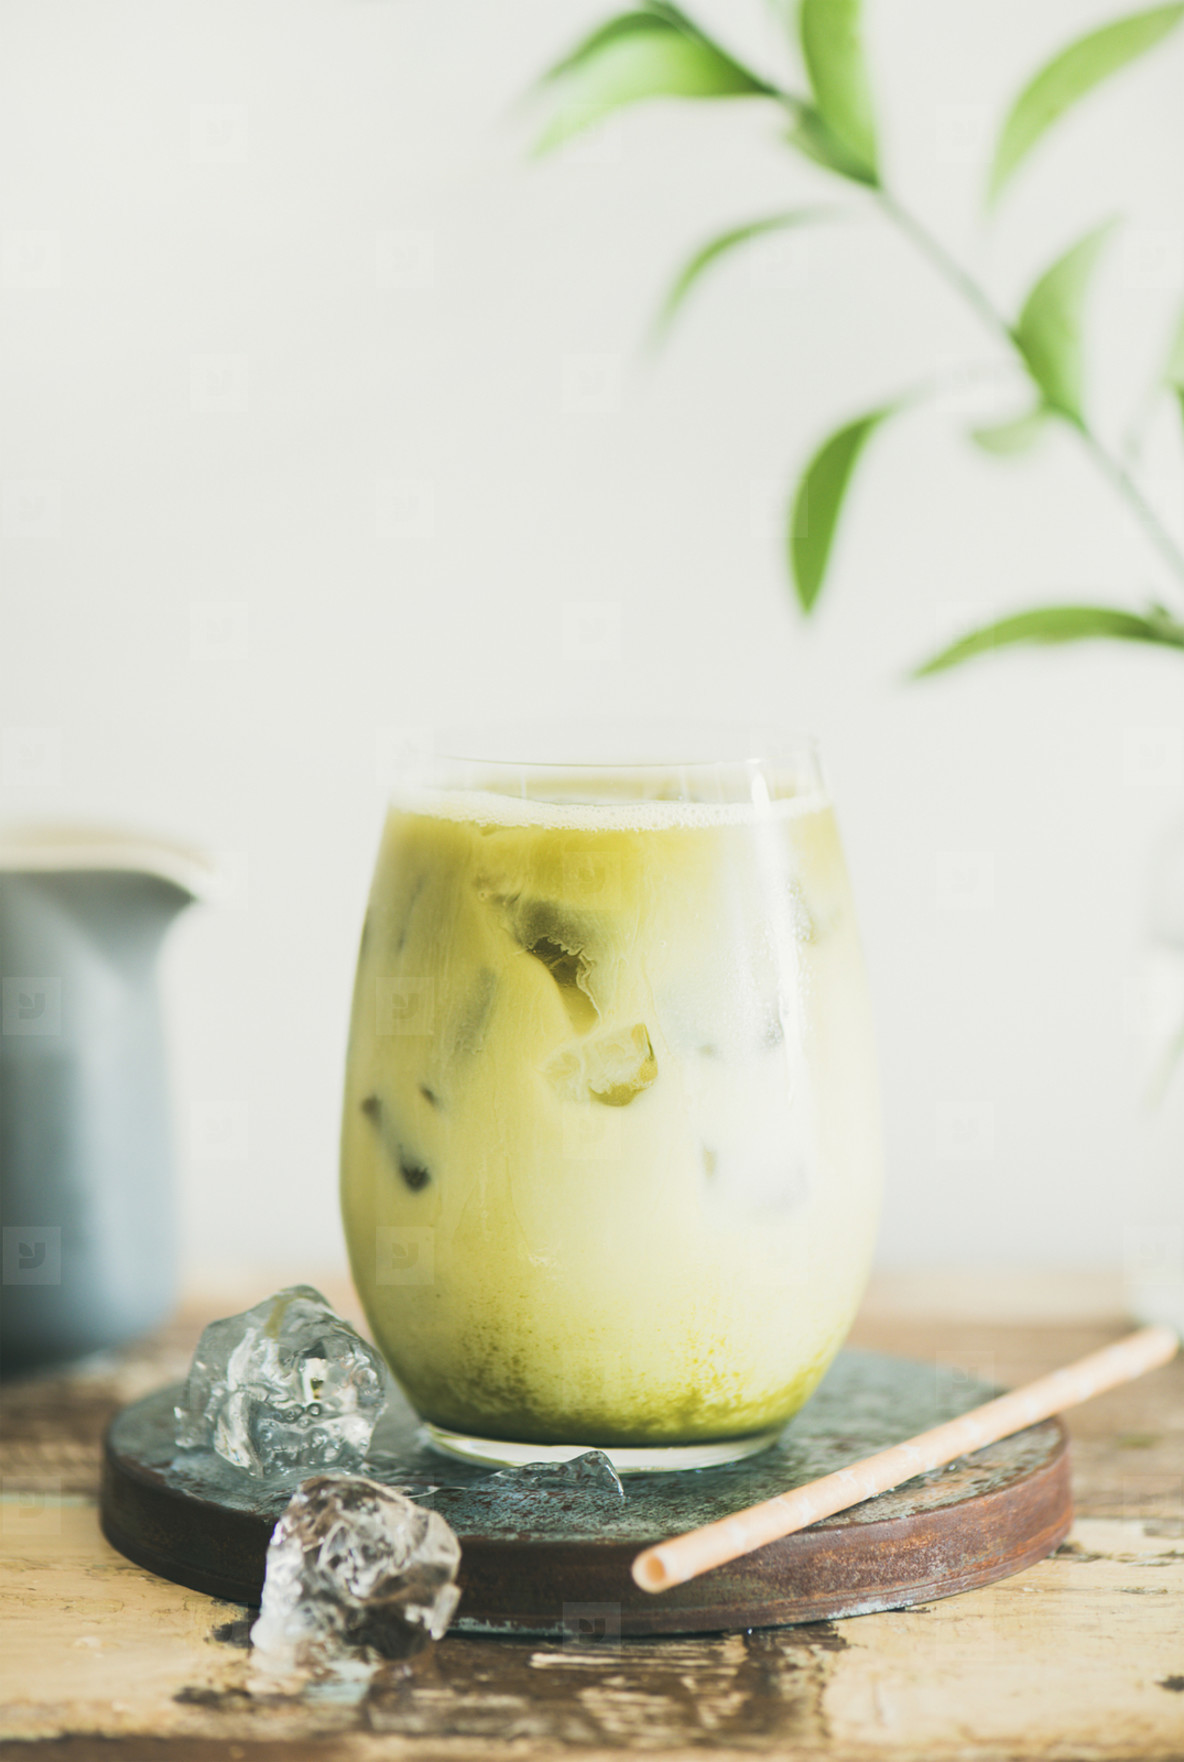 Iced matcha latte drink  white wall at background  close up